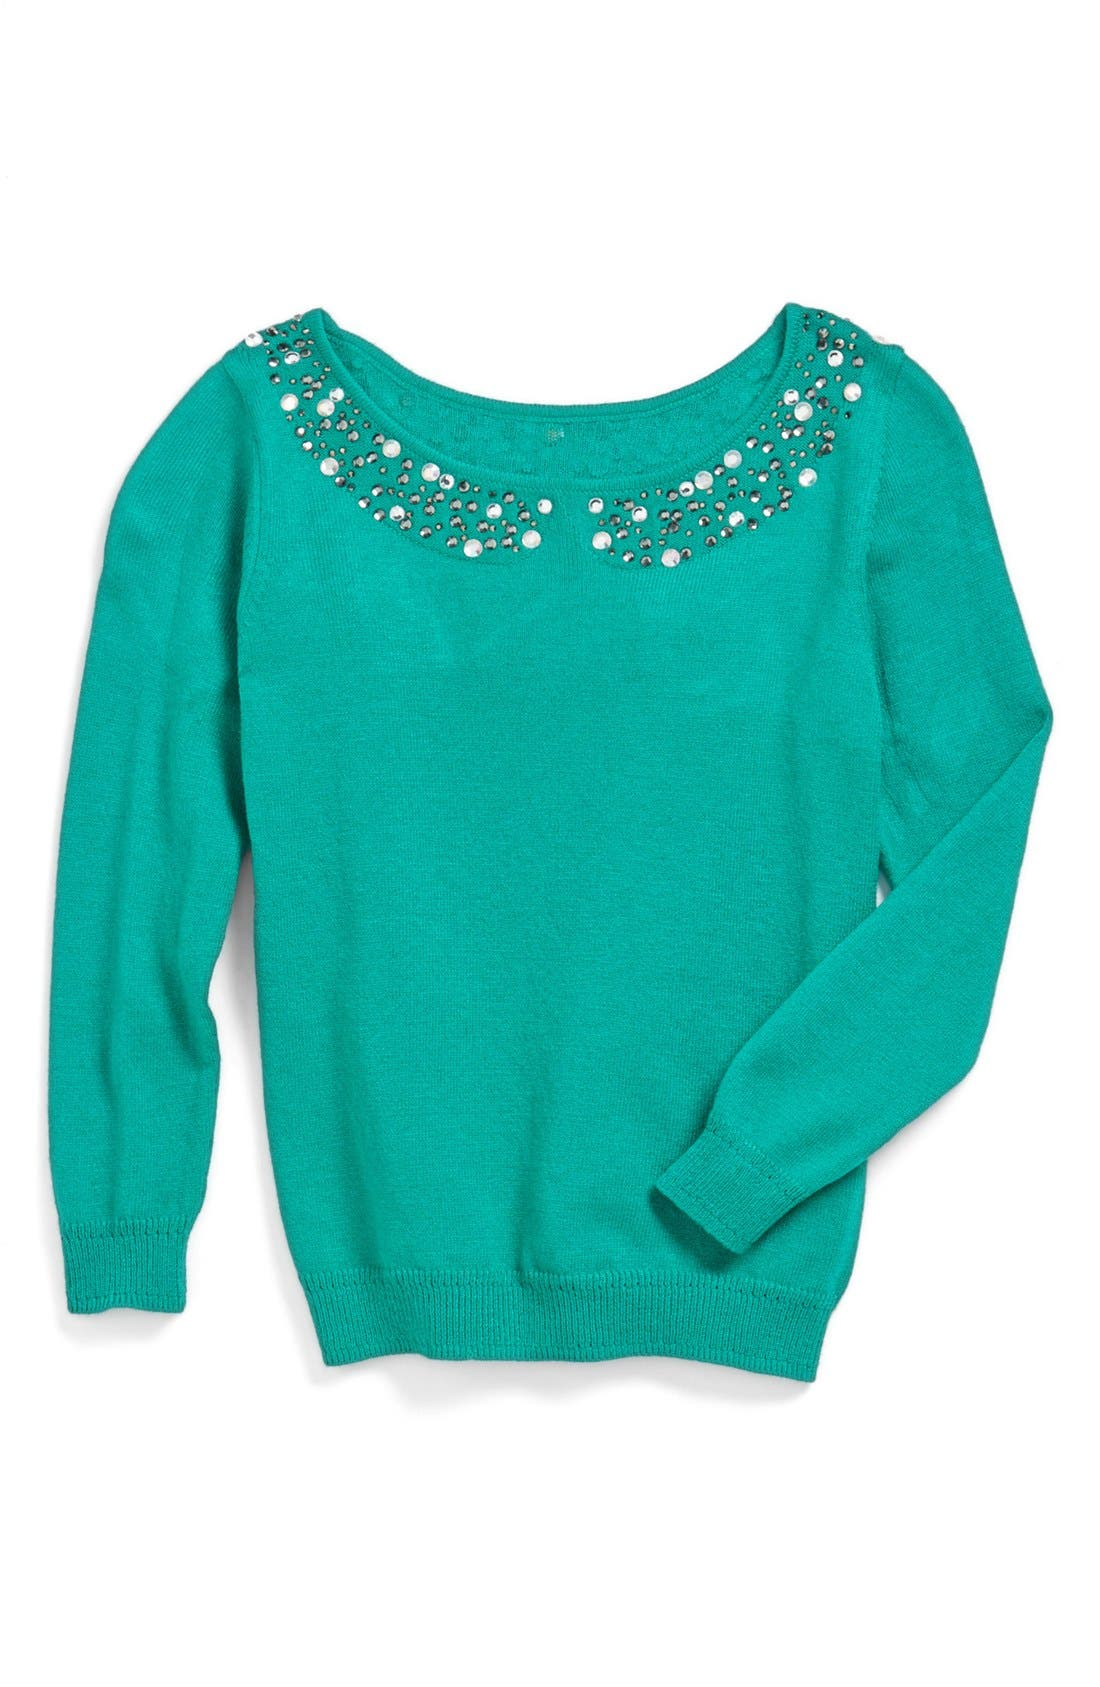 Alternate Image 1 Selected - Milly Minis Rhinestone Collar Sweater (Toddler Girls, Little Girls & Big Girls)